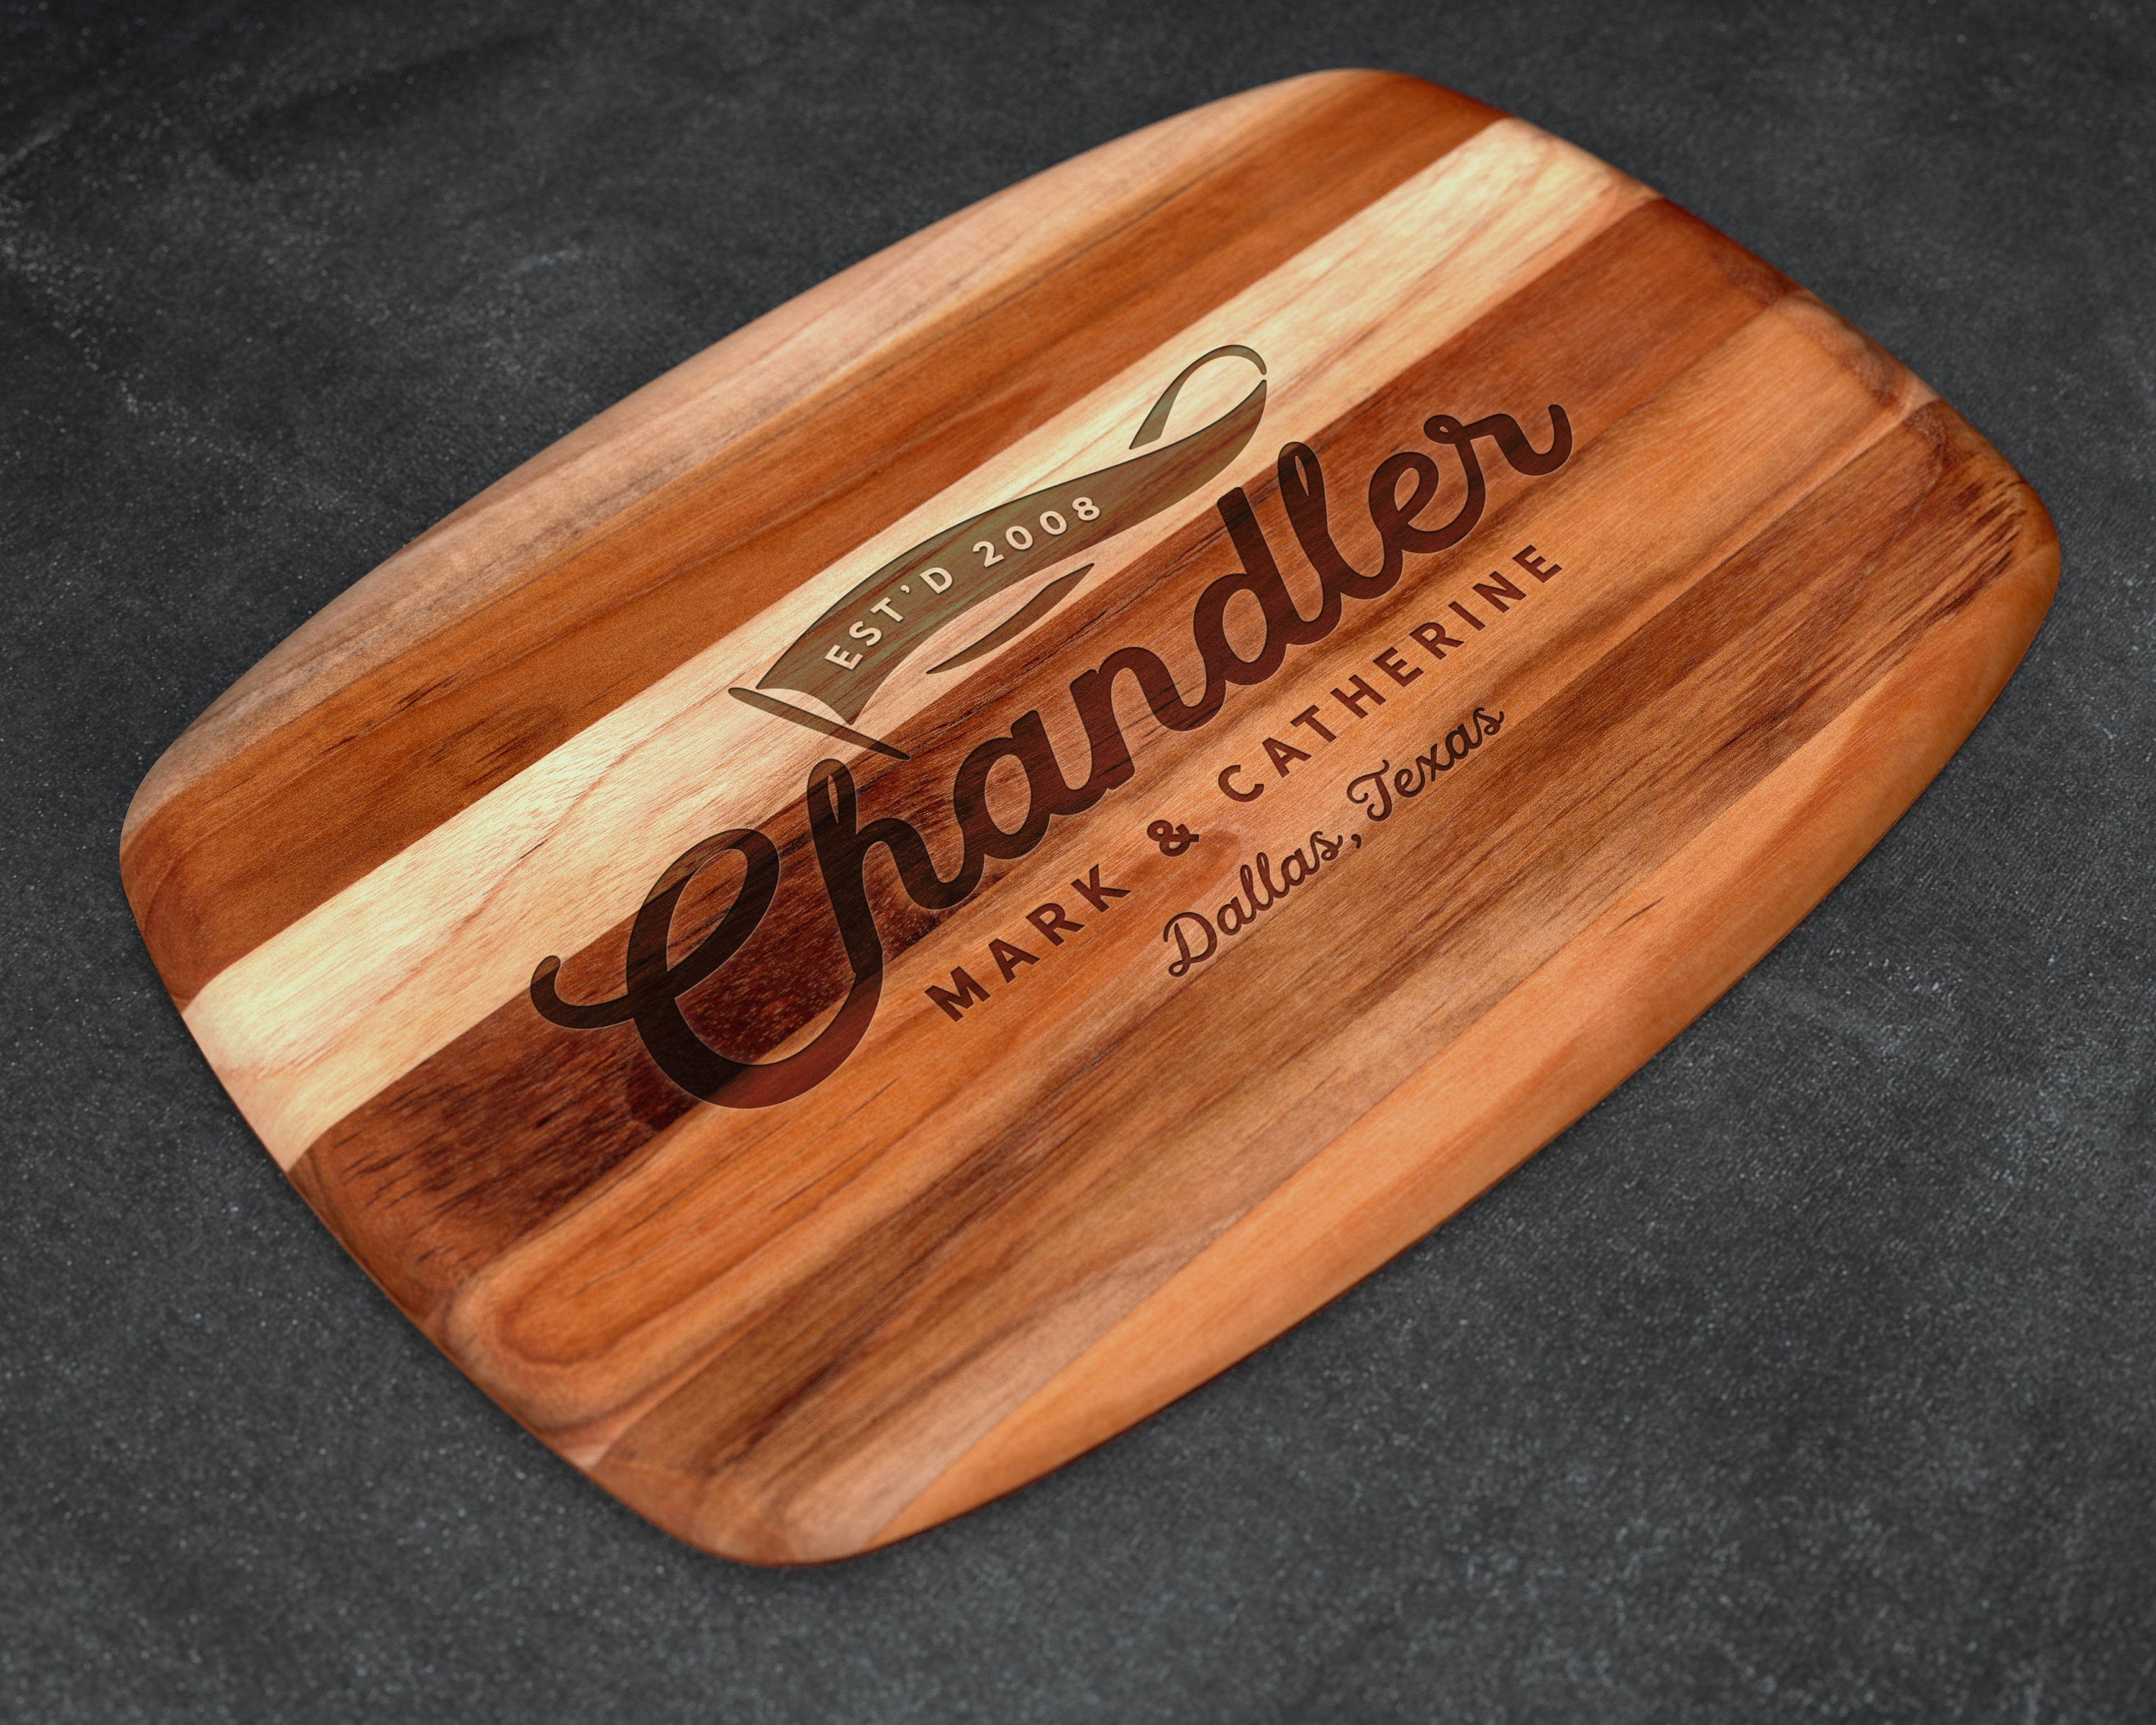 Unique Gift Teak Cutting Boards Cutting Board Custom Cutting Board Christmas Gift Ideas Chopping Board Personalized Cutting Board Personalized Gift Charcuterie Board Wooden Board Talkingbread Co Il